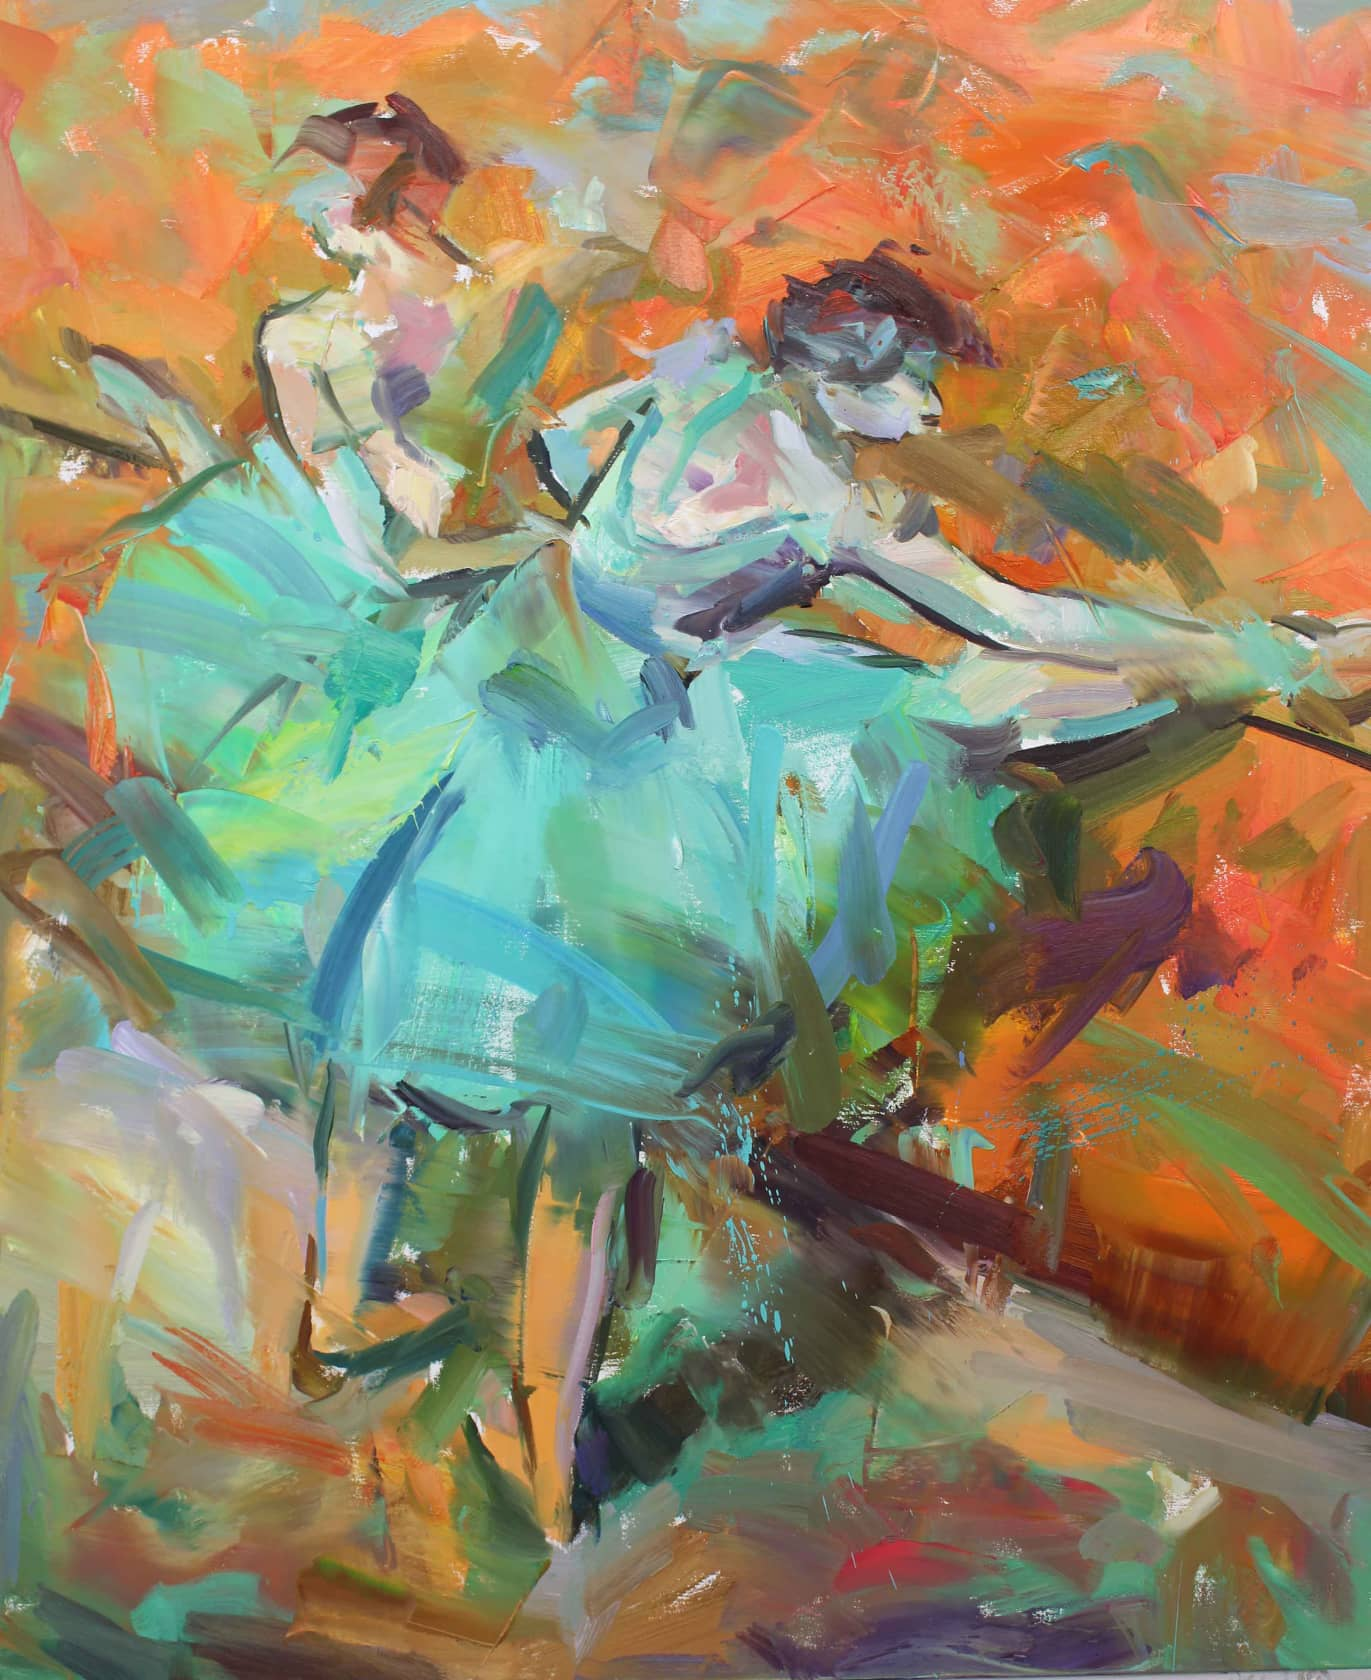 Paul Wright, Dancers at The Barre (After Degas), 2017